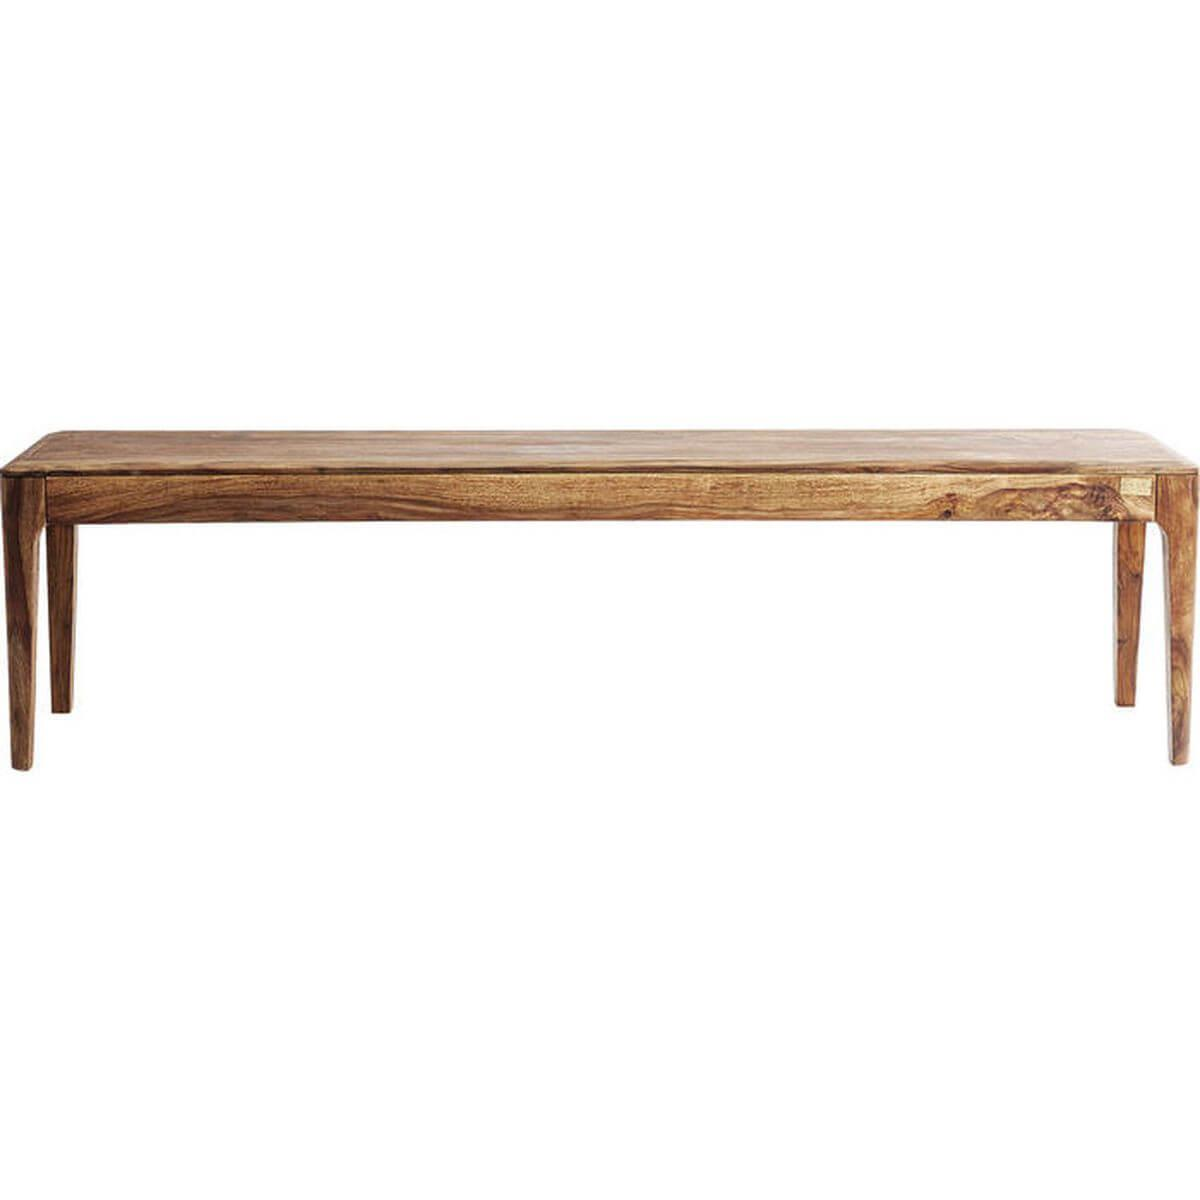 Banc Brooklyn Nature Kare Design 140cm